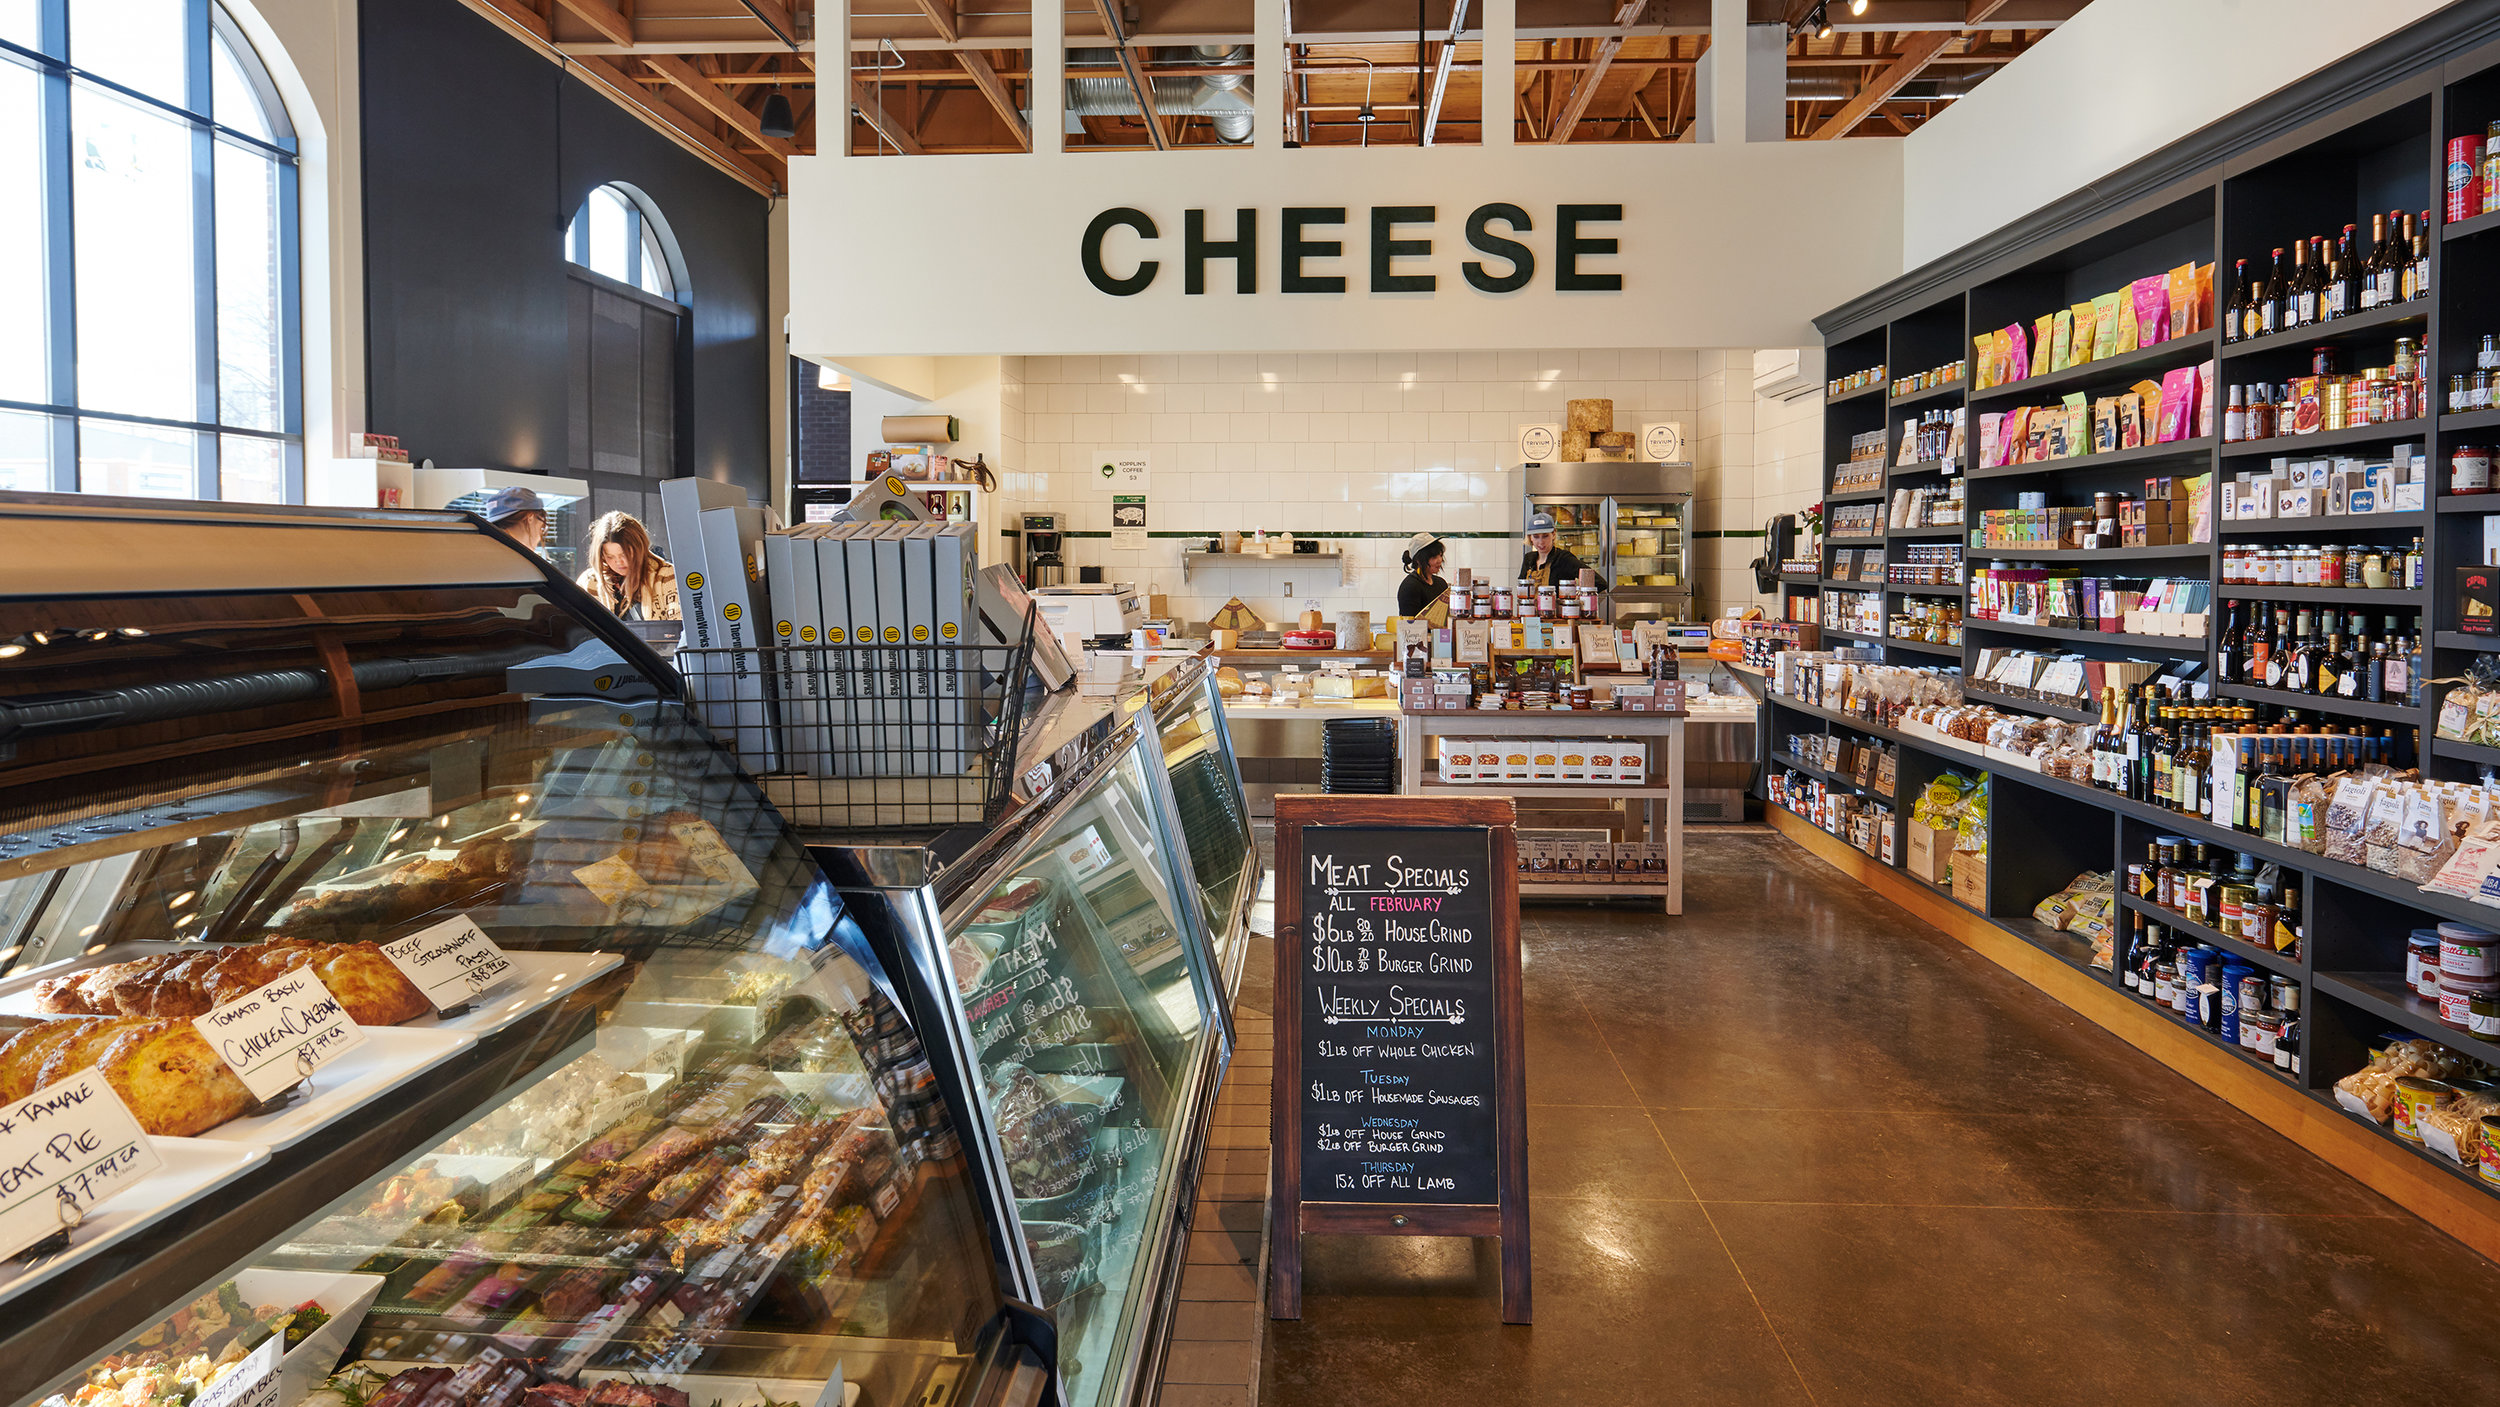 006-high-res Cheese Shop F44.jpg